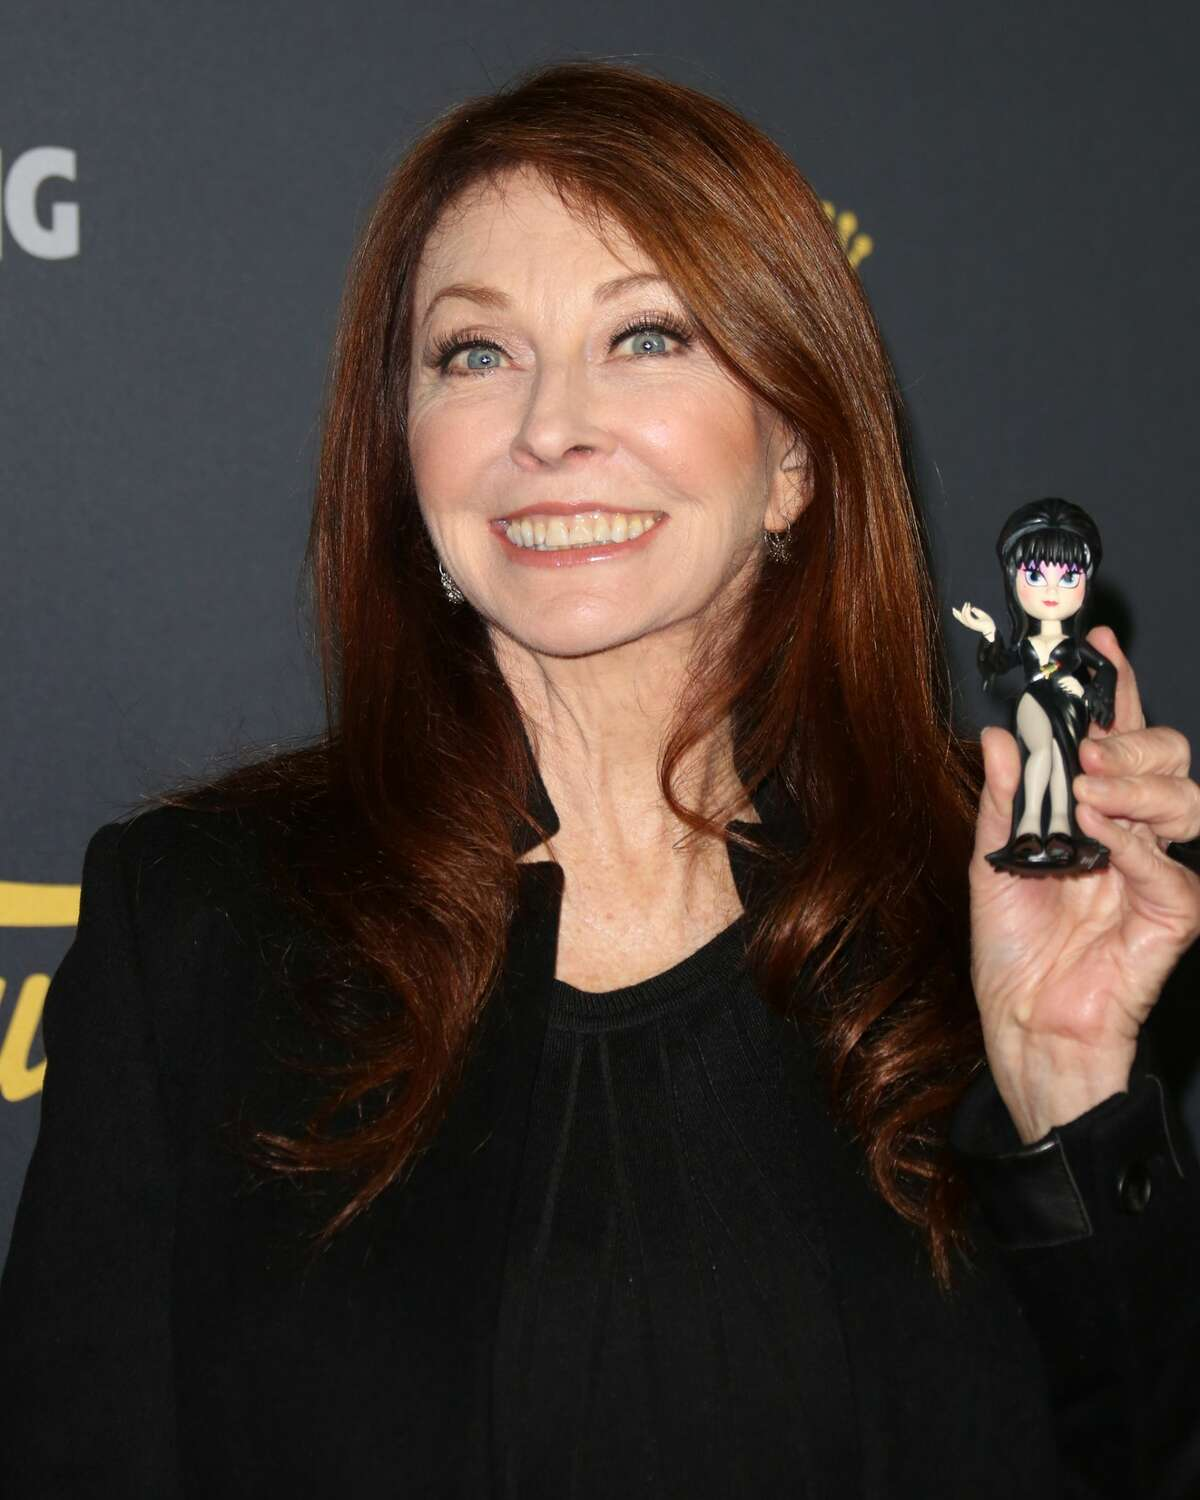 HOLLYWOOD, CA - JANUARY 22: Actress Cassandra Peterson attends the premiere of